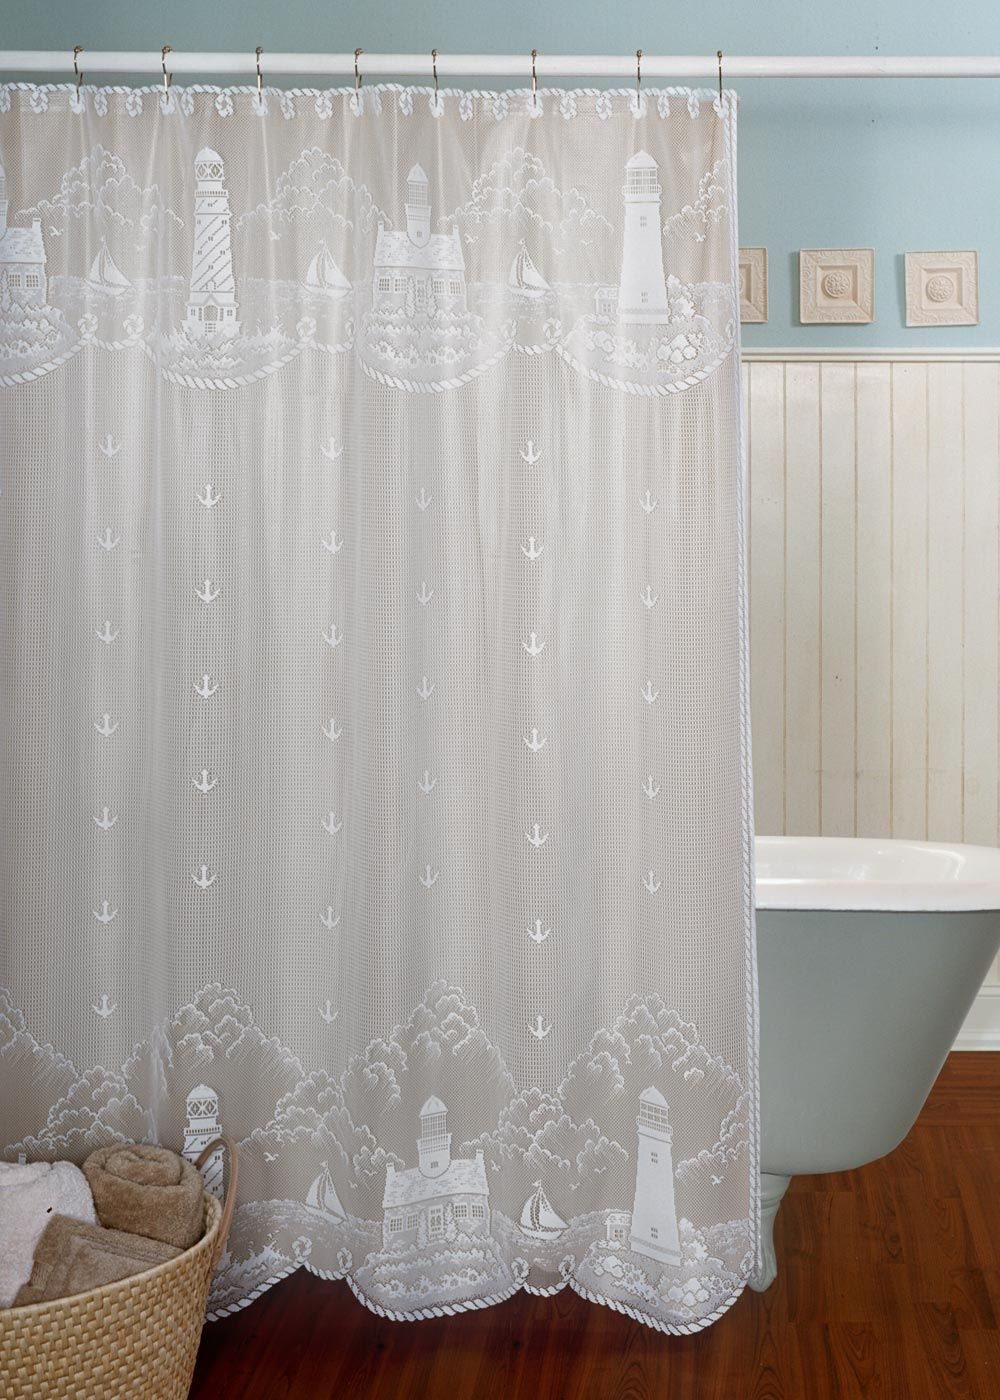 Decorate Your Lake House Bathroom With A Shoreline View With This Shower Curtain Lighthouse Summer Coastal Cortinas De Bano Cortinas Banos